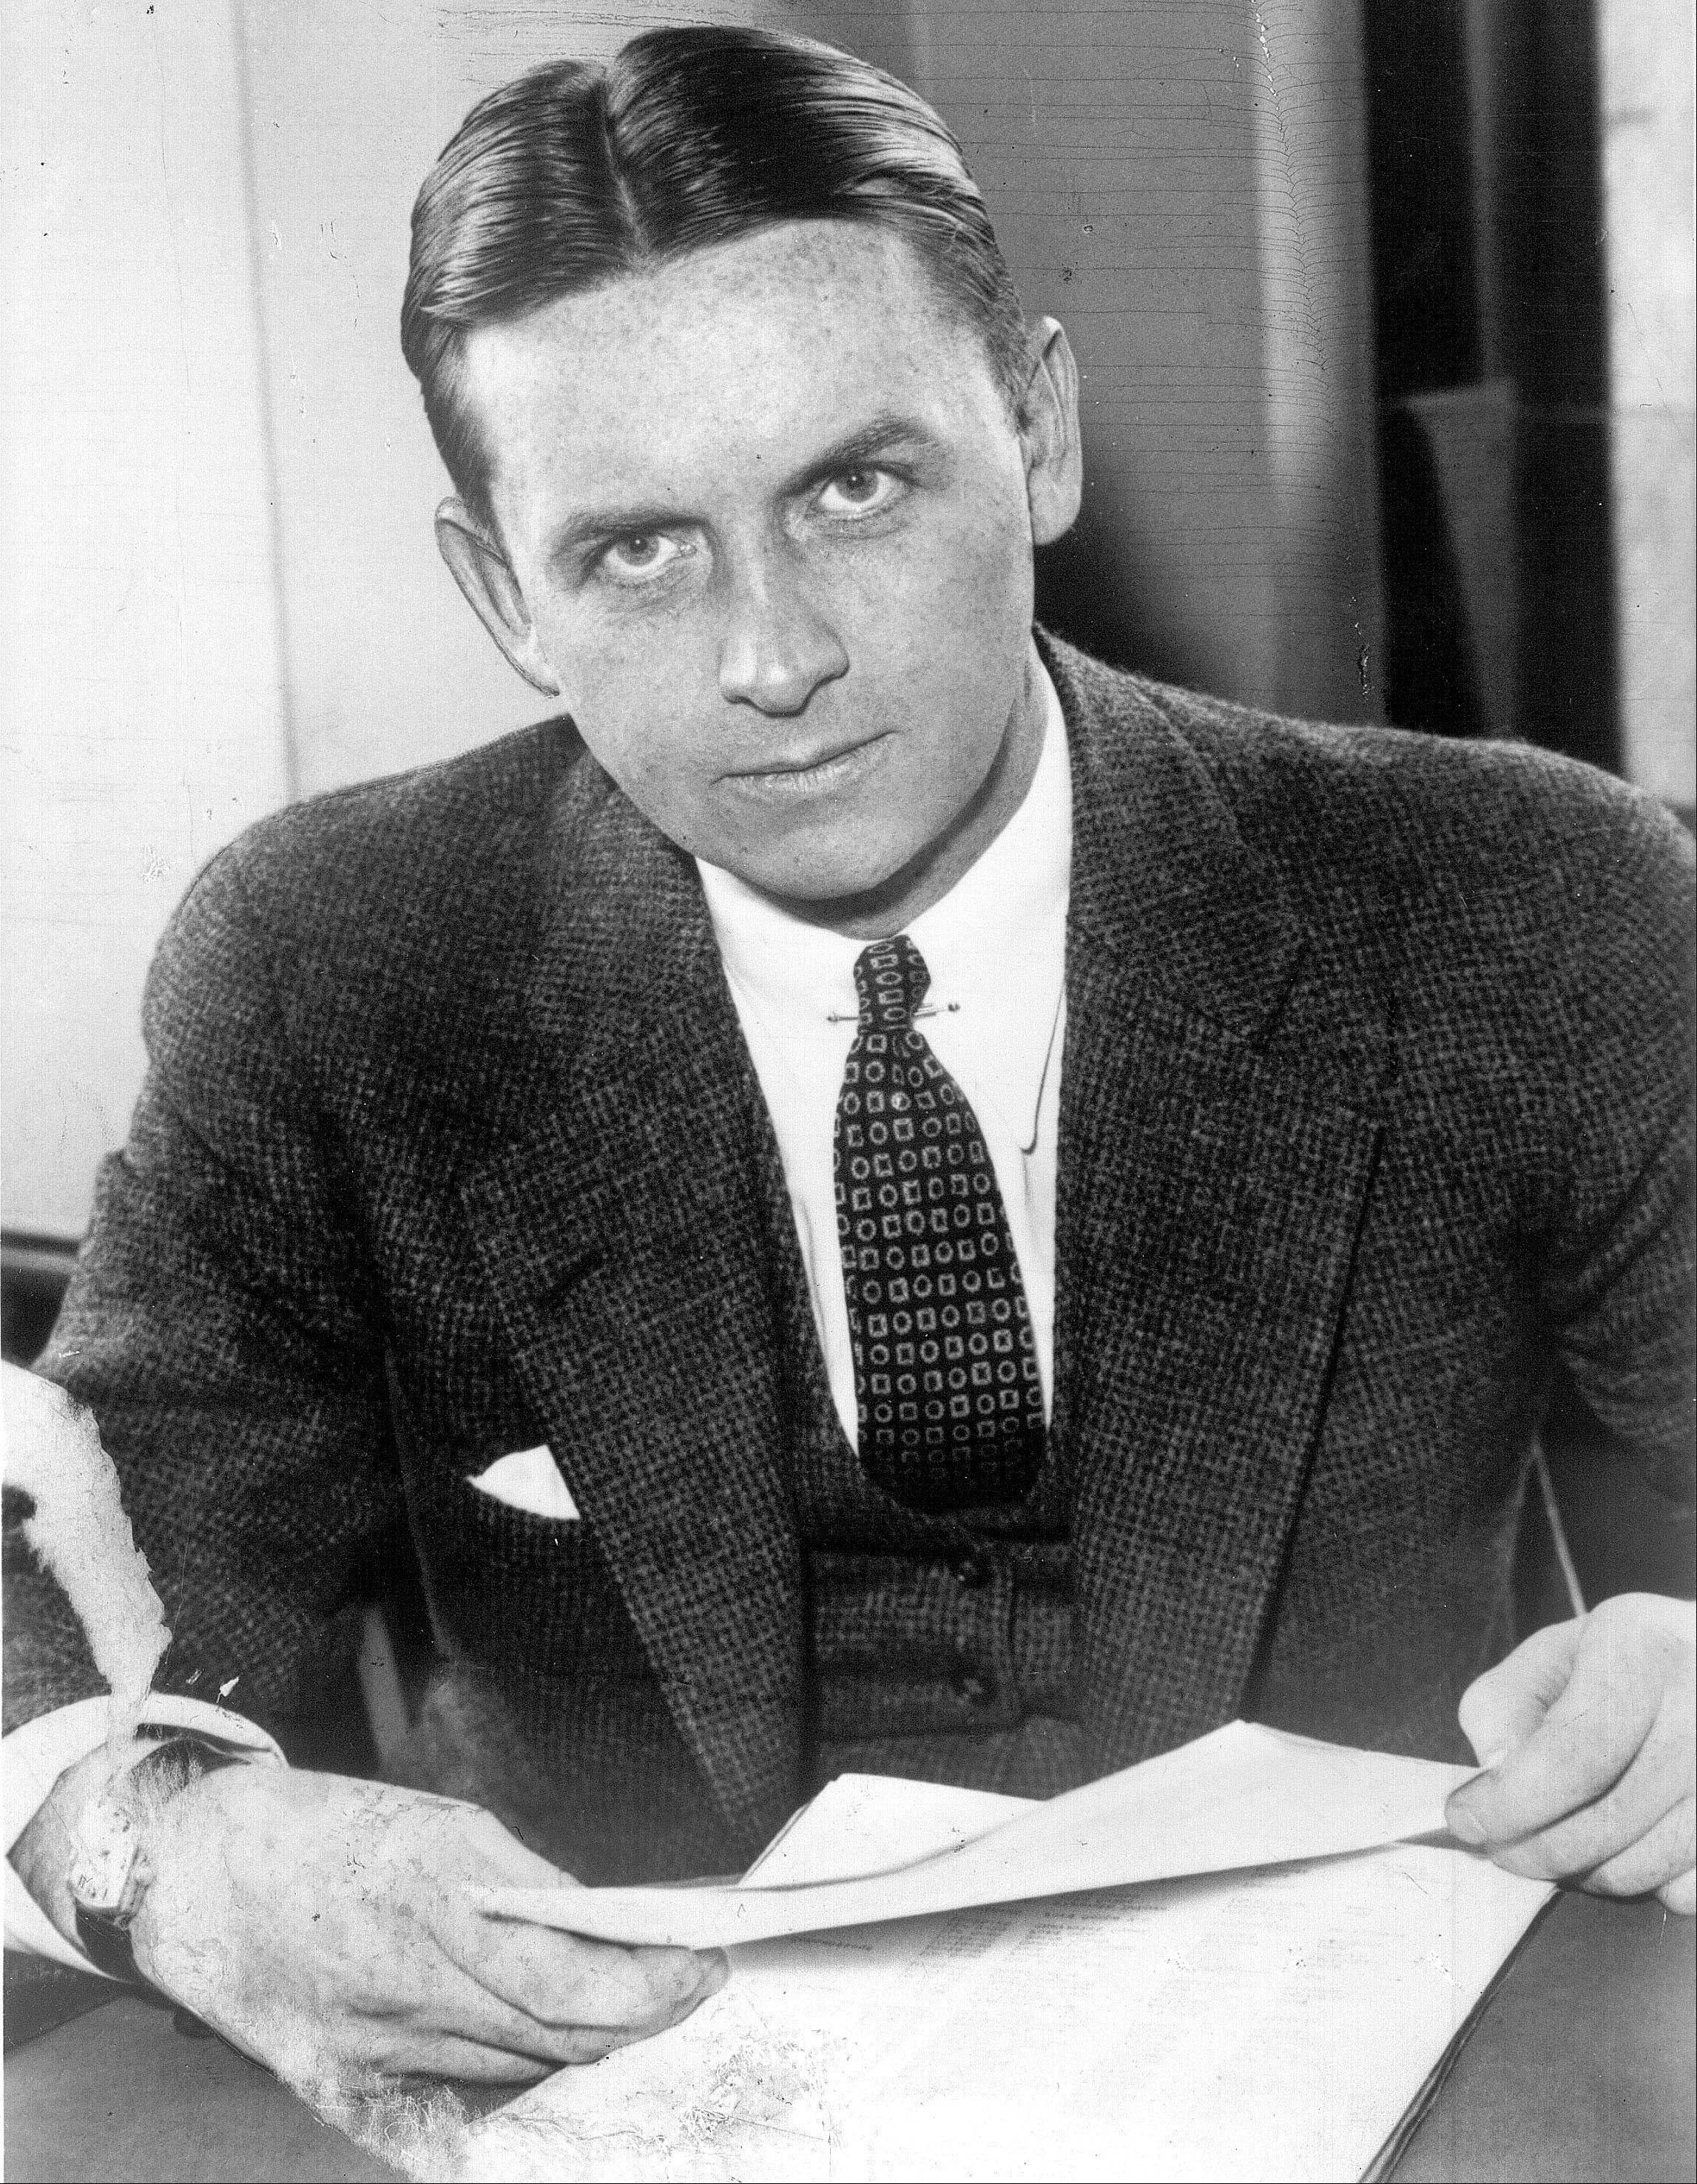 This undated file photo shows Eliot Ness in Cleveland. Portrayed over the years by Kevin Costner and Robert Stack as an incorruptible hero, Ness� legend is now at risk, with some claiming his role in taking out Chicago mobster Al Capone is as mythical as Mrs. O�Leary�s cow starting the Great Chicago Fire.